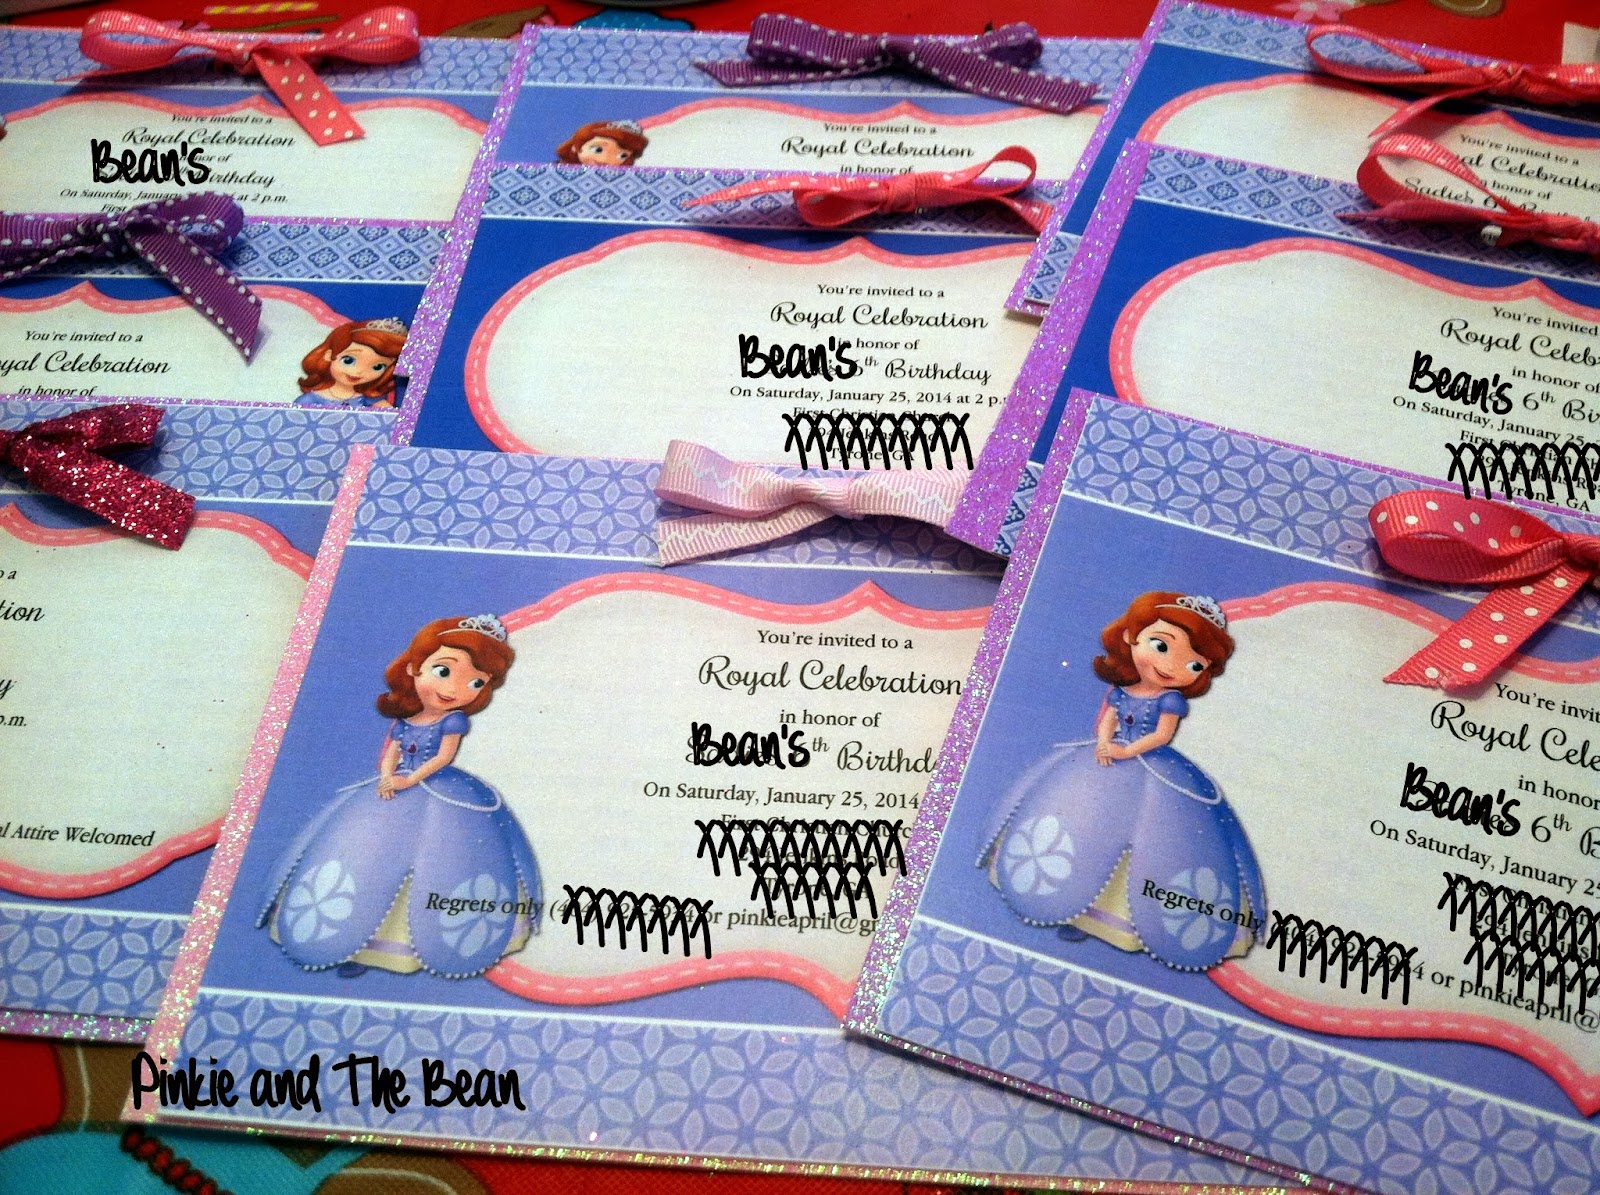 Pinkie bean beans sofia the first birthday party i only had to purchase the sparkly cardstock for the backing paper of our invites and more envelopes using a great coupon at michaels i was able to put stopboris Gallery